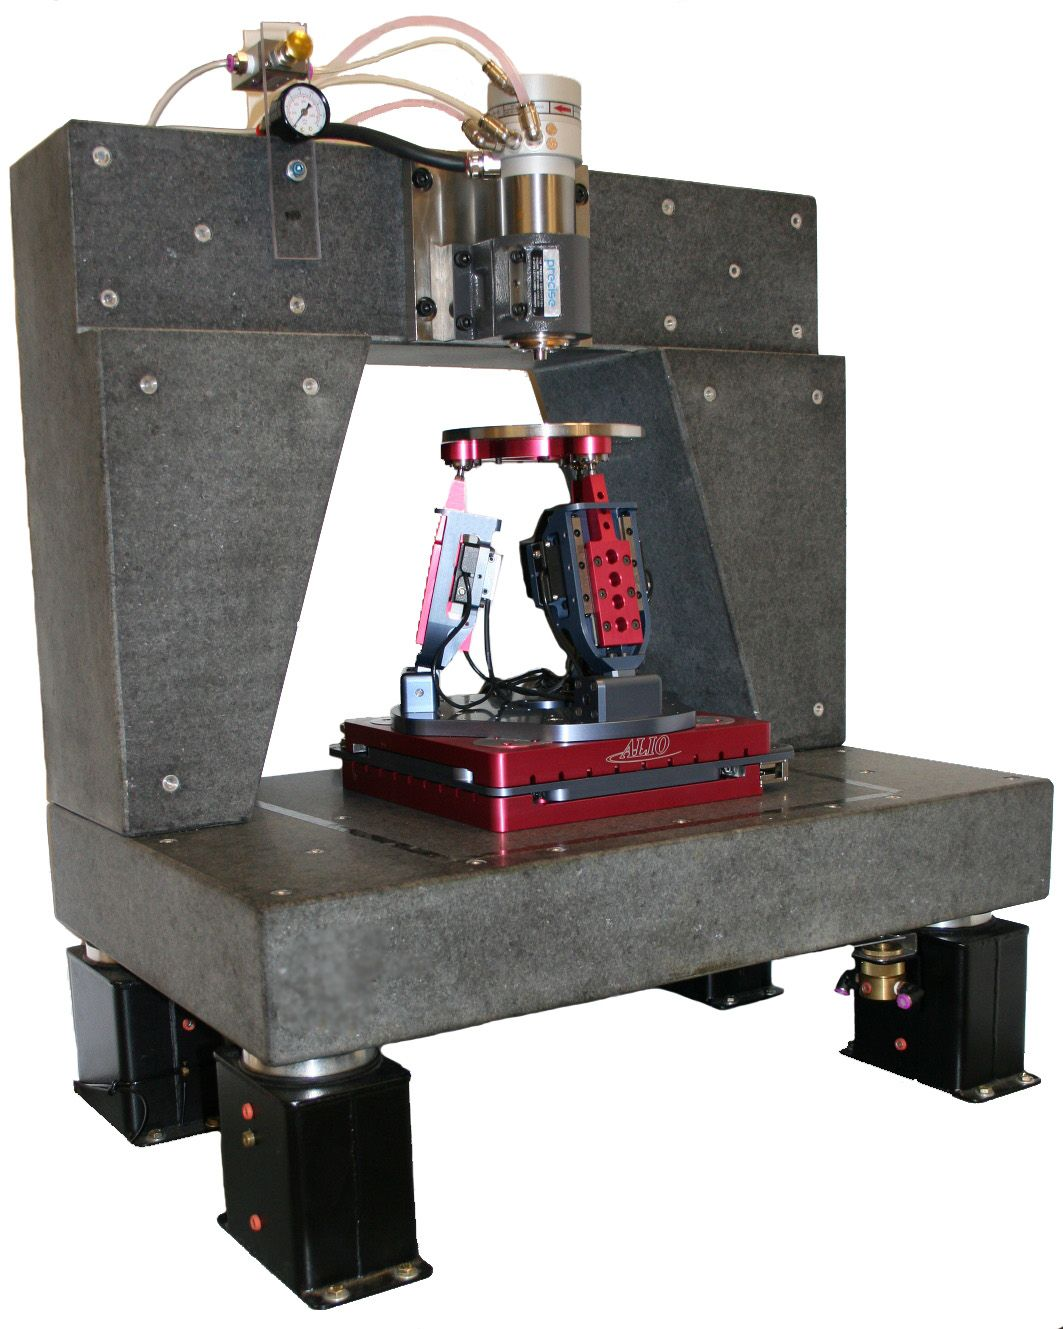 The ultimate nano precision 5-Axis machine tool with